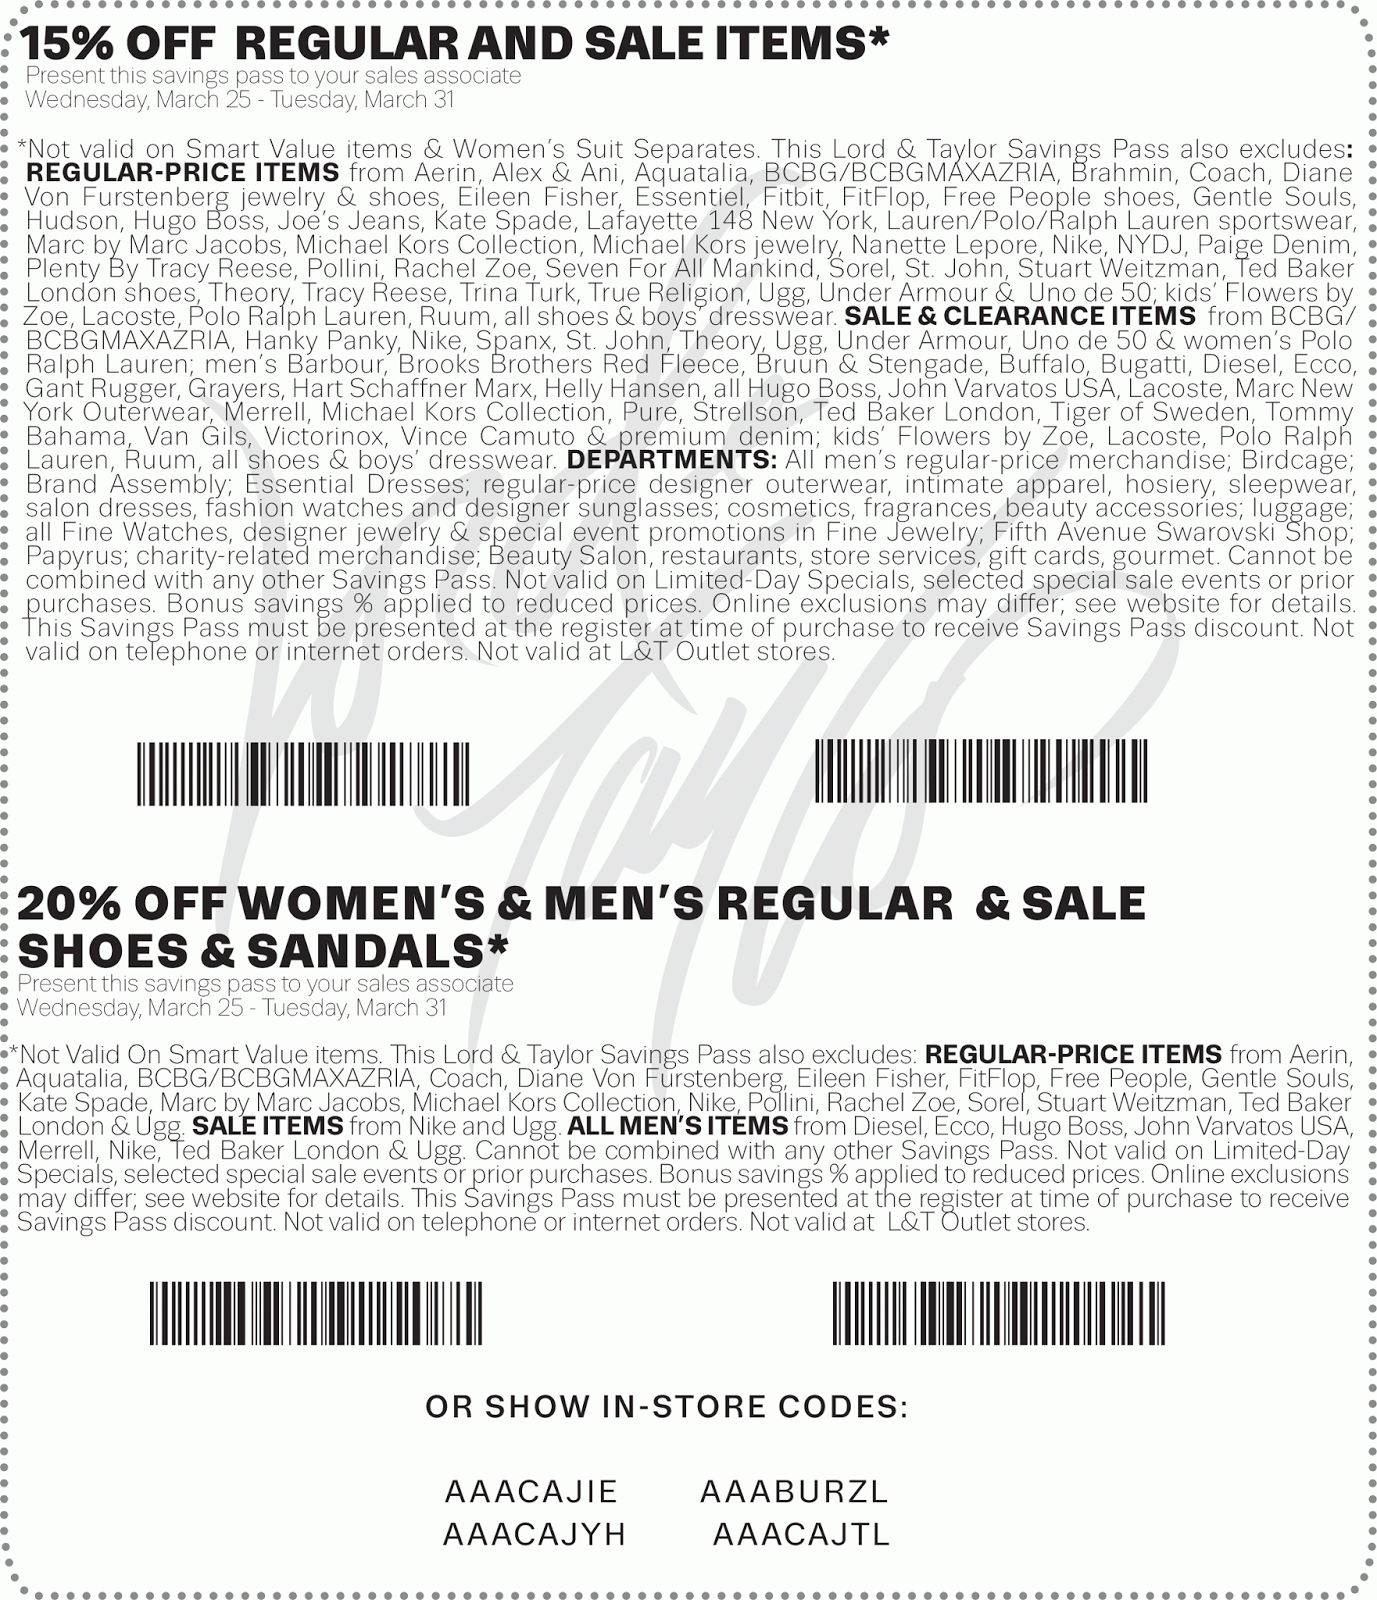 photo about Lord and Taylor Coupons Printable referred to as Lord and taylor coupon code may perhaps 2018 / Philadelphia eagles